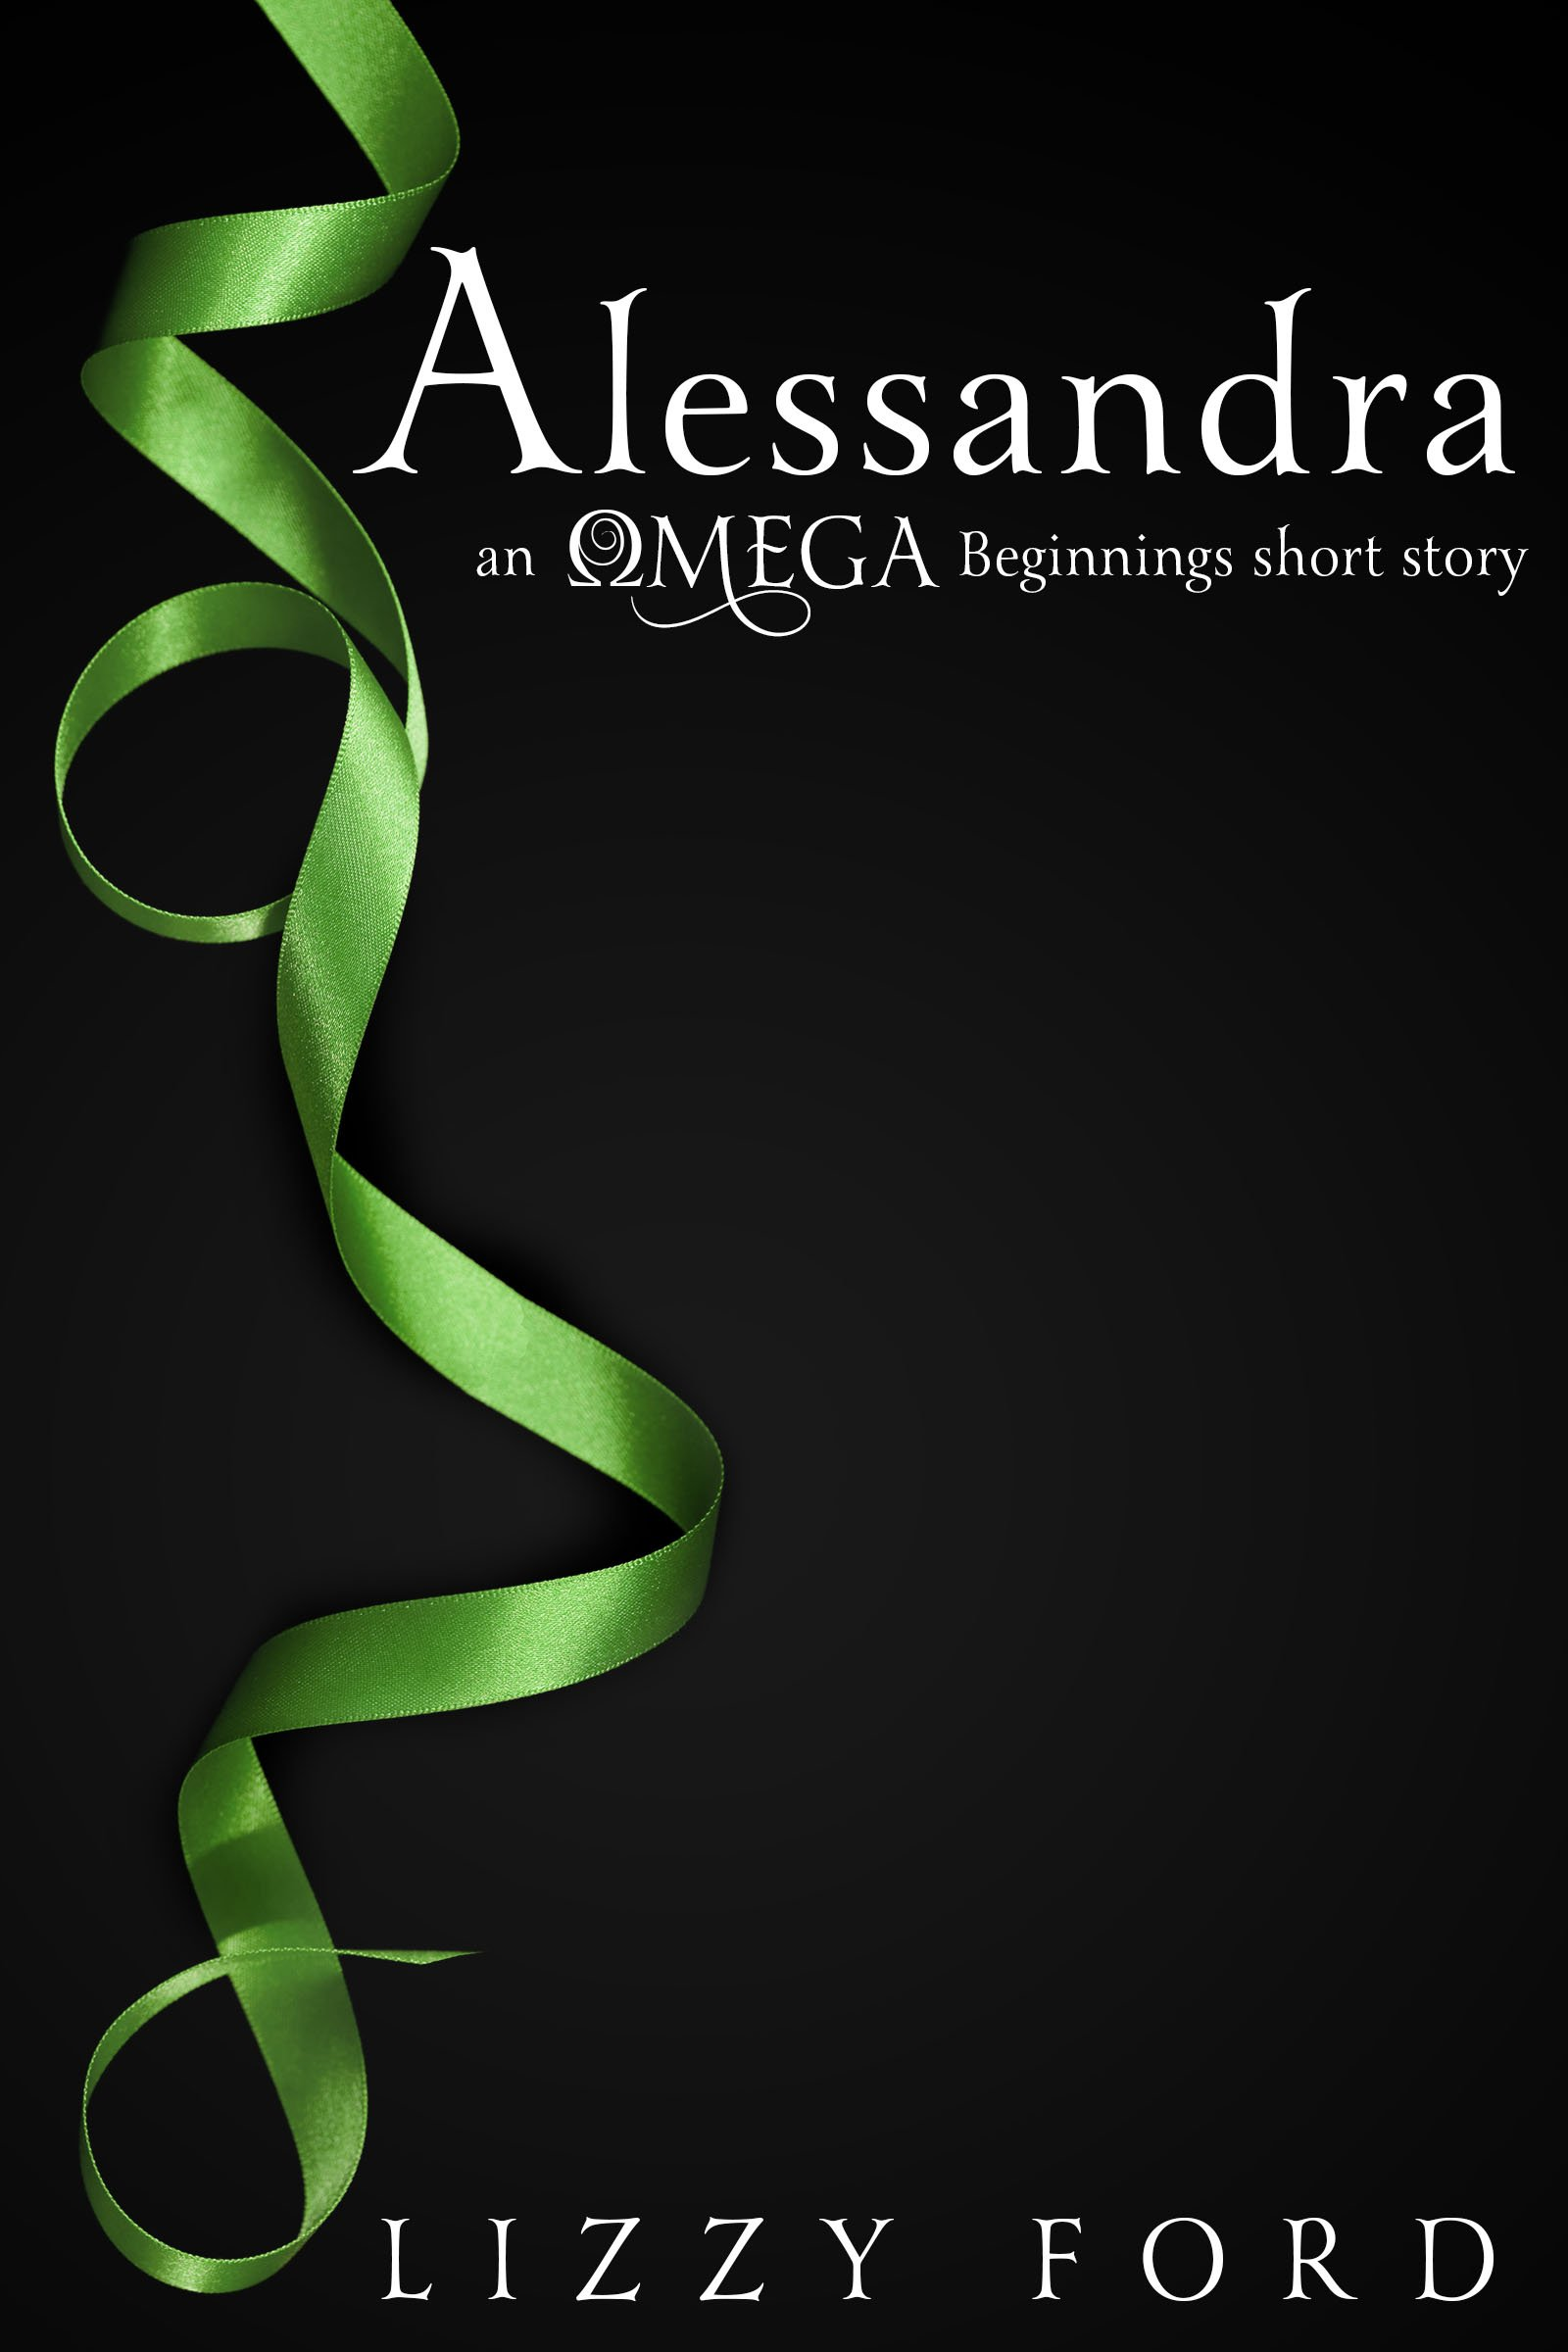 alessandra---medium